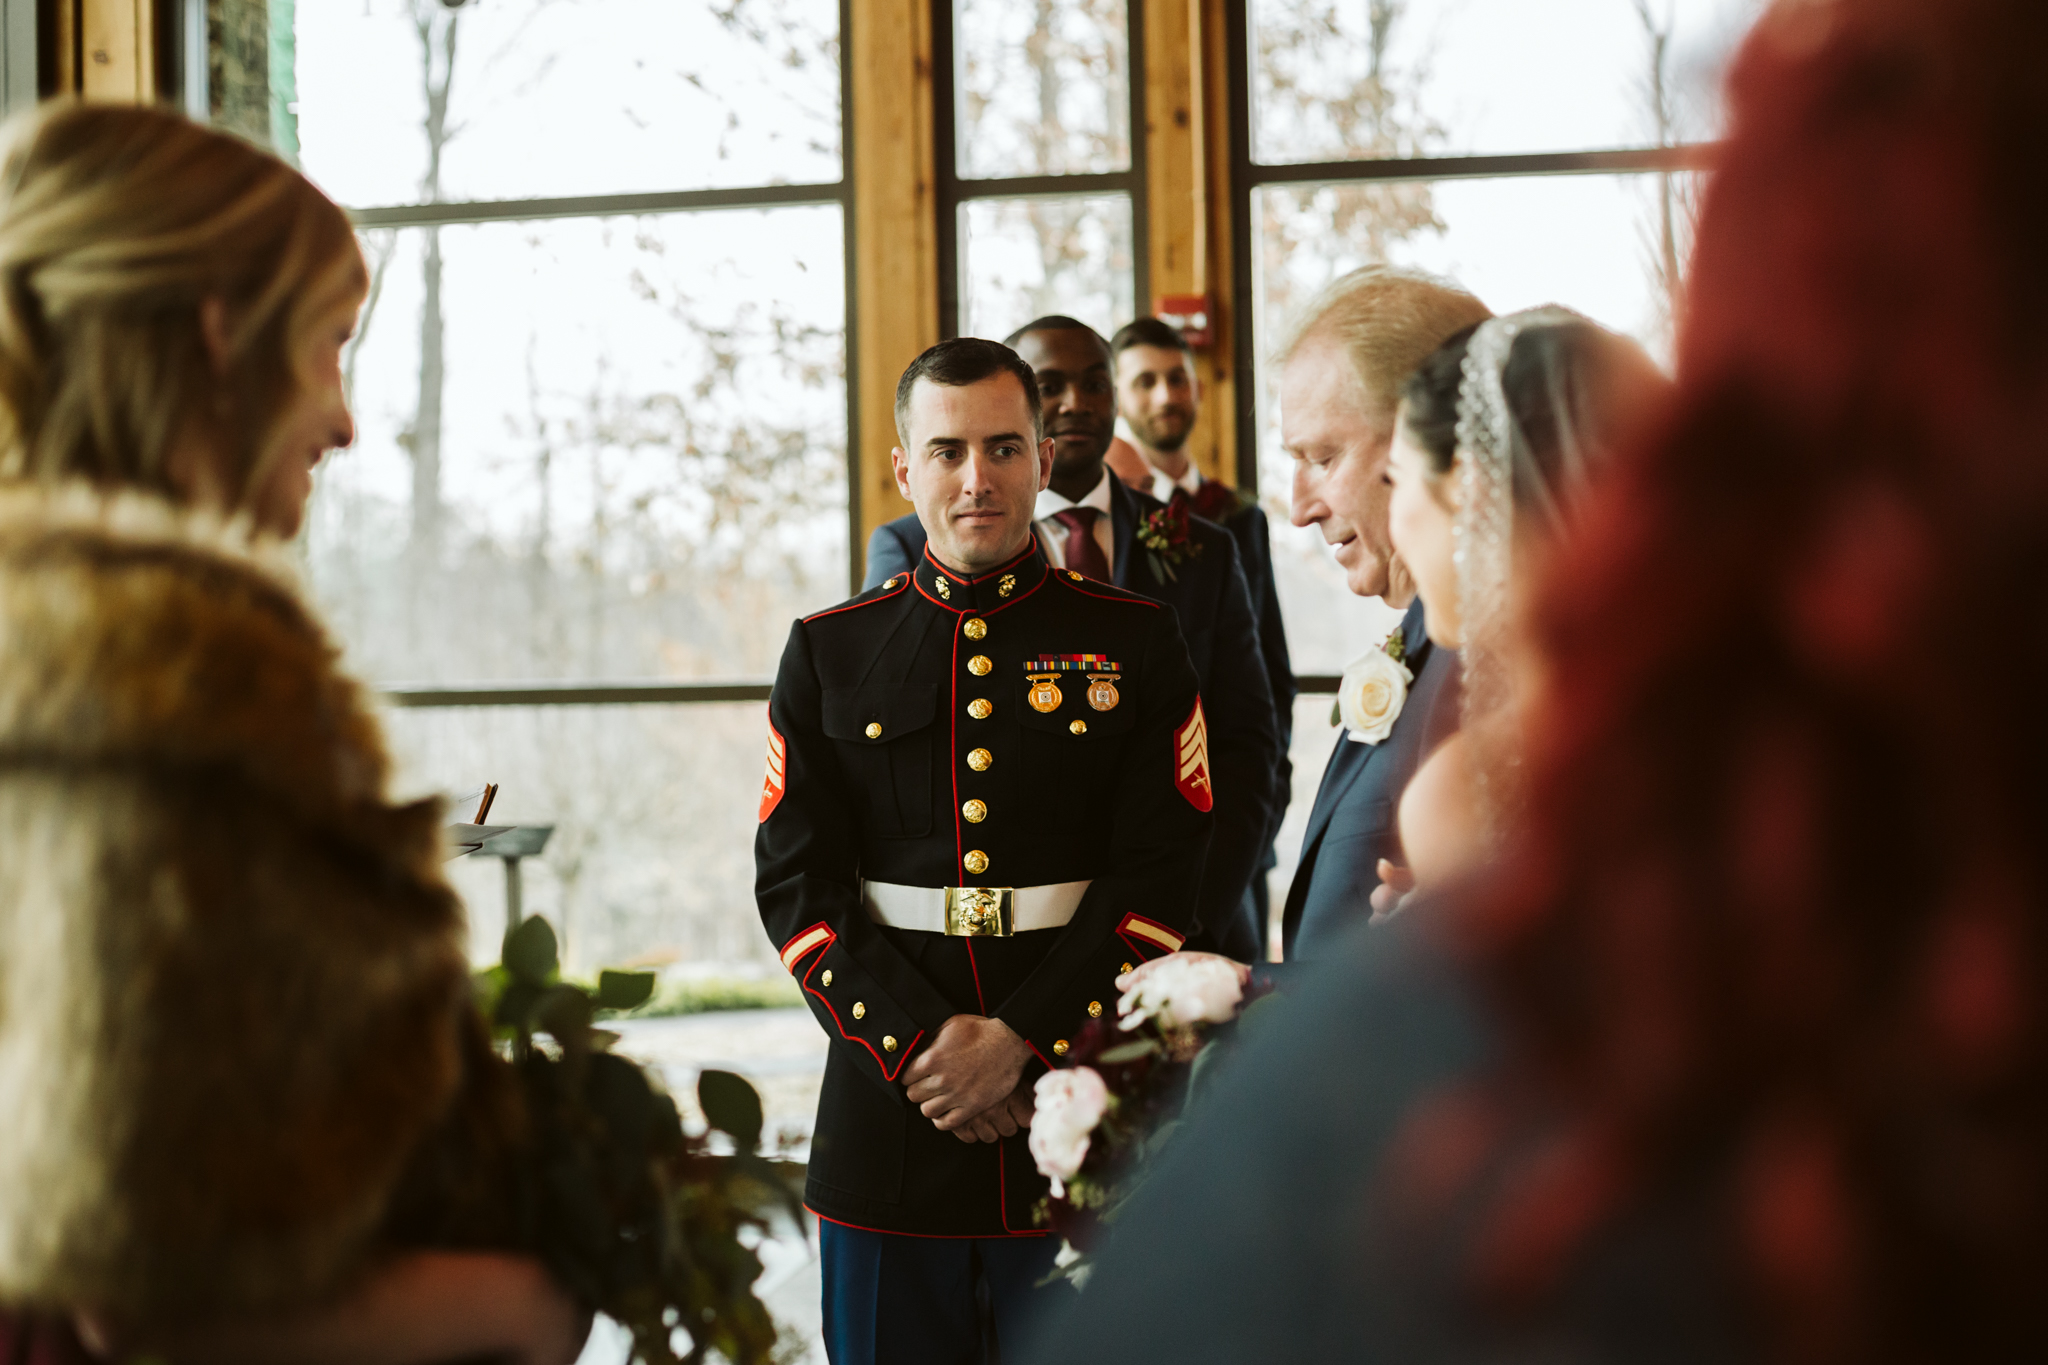 solinsky_wedding_national_museum_of_marine_corp-20.jpg